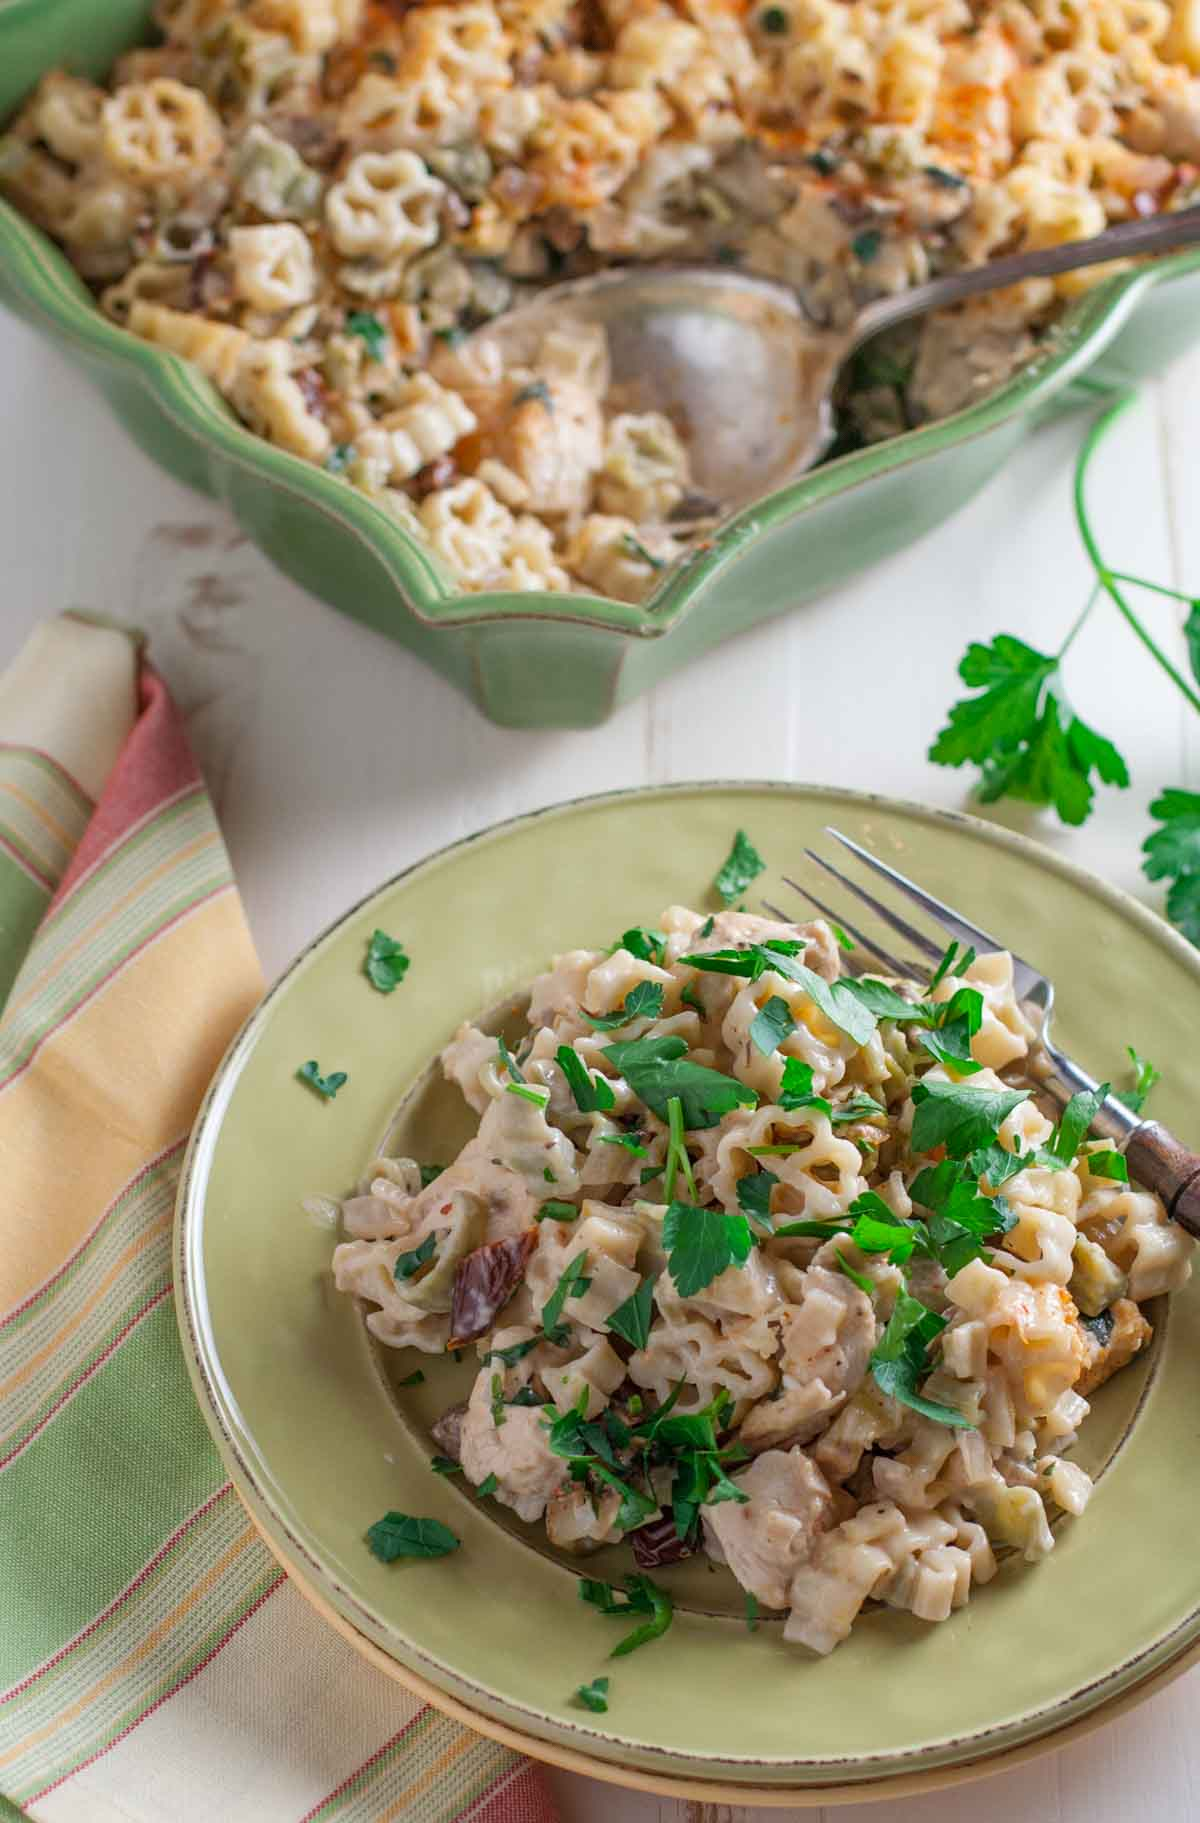 Creamy Chicken and Sun Dried Tomato Pasta   WorldofPastabilities.com   Delicious updated chicken casserole with bursts of flavor! Can be made ahead or frozen for later. Yum!